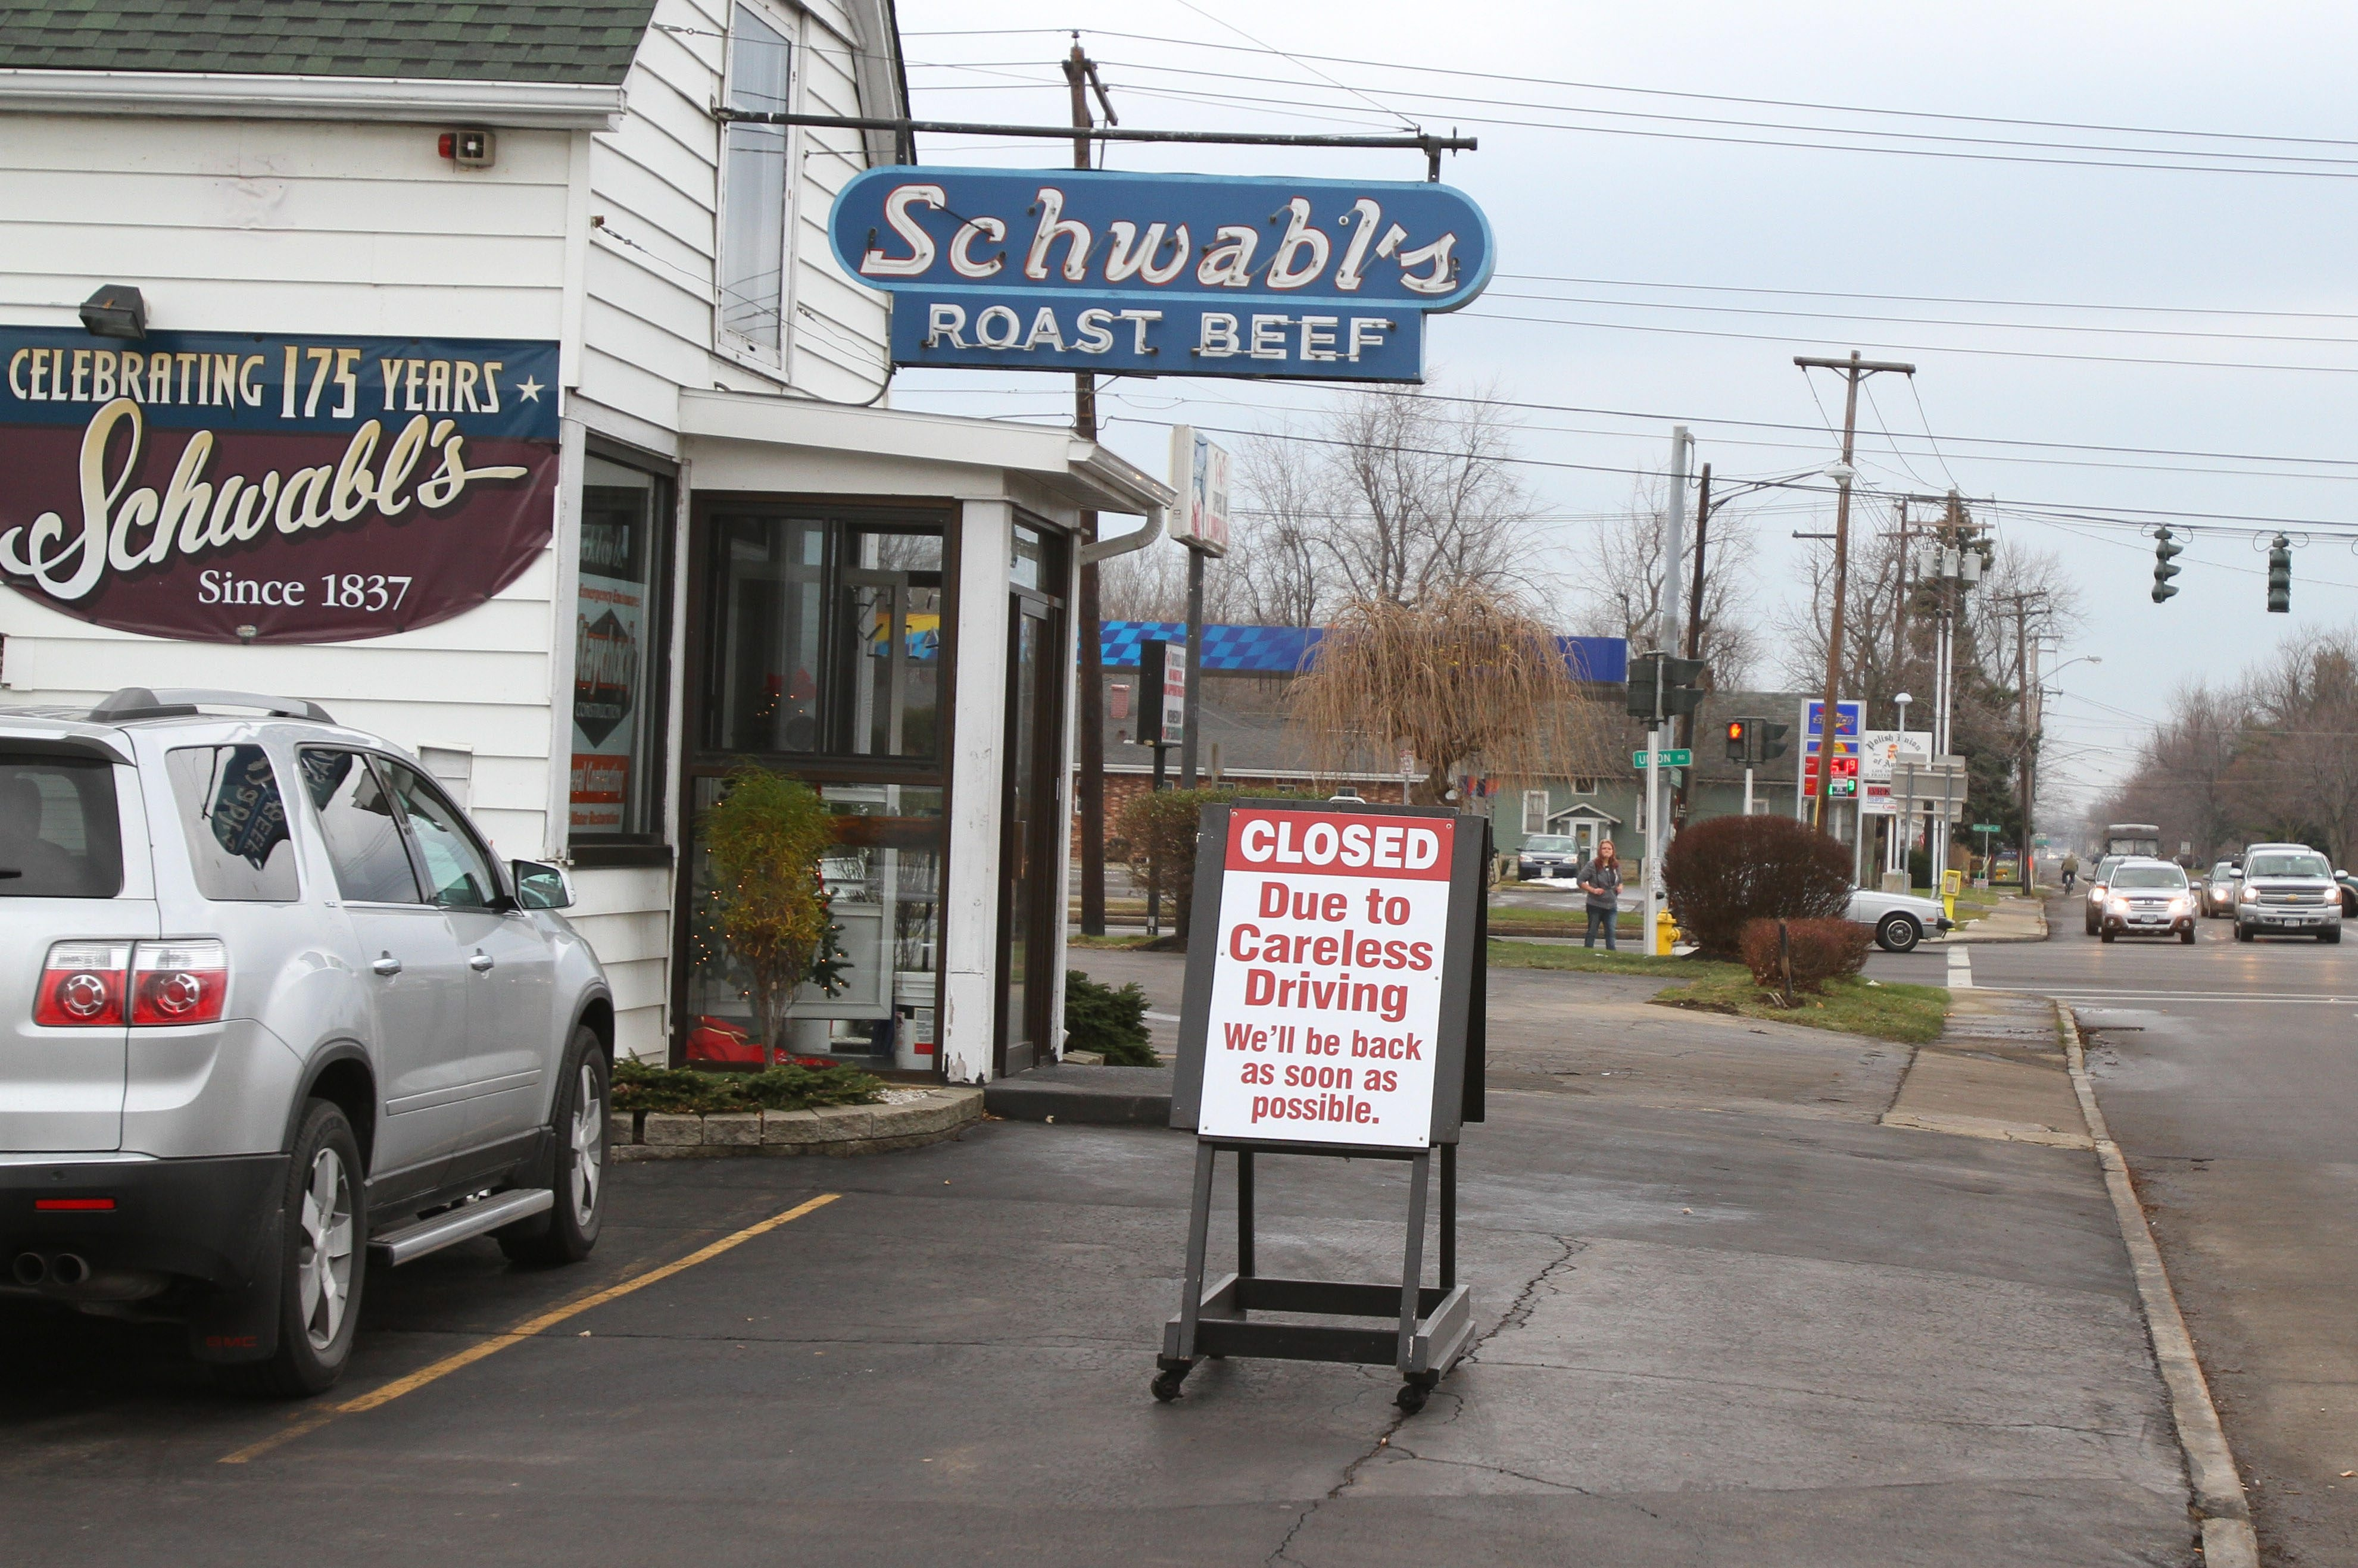 Sign outside of Schwabl's restaurant explains why the restaurant is closed.